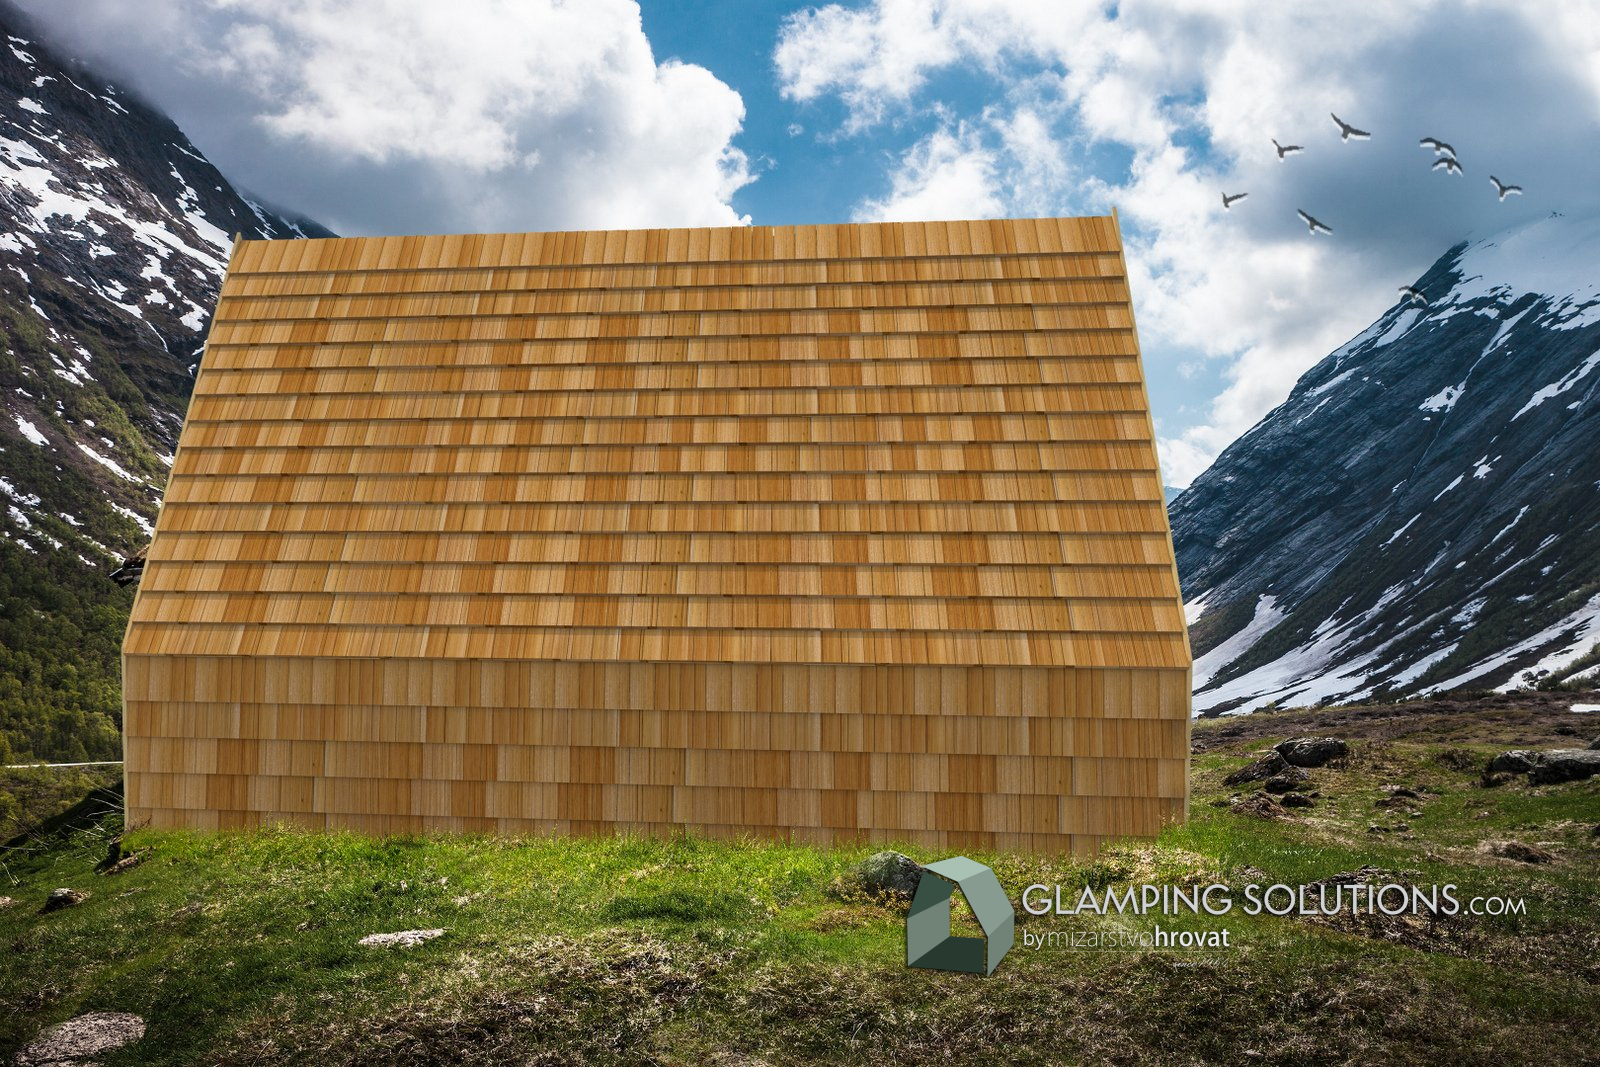 Glamping-Solutions-Alpine-Hut-3